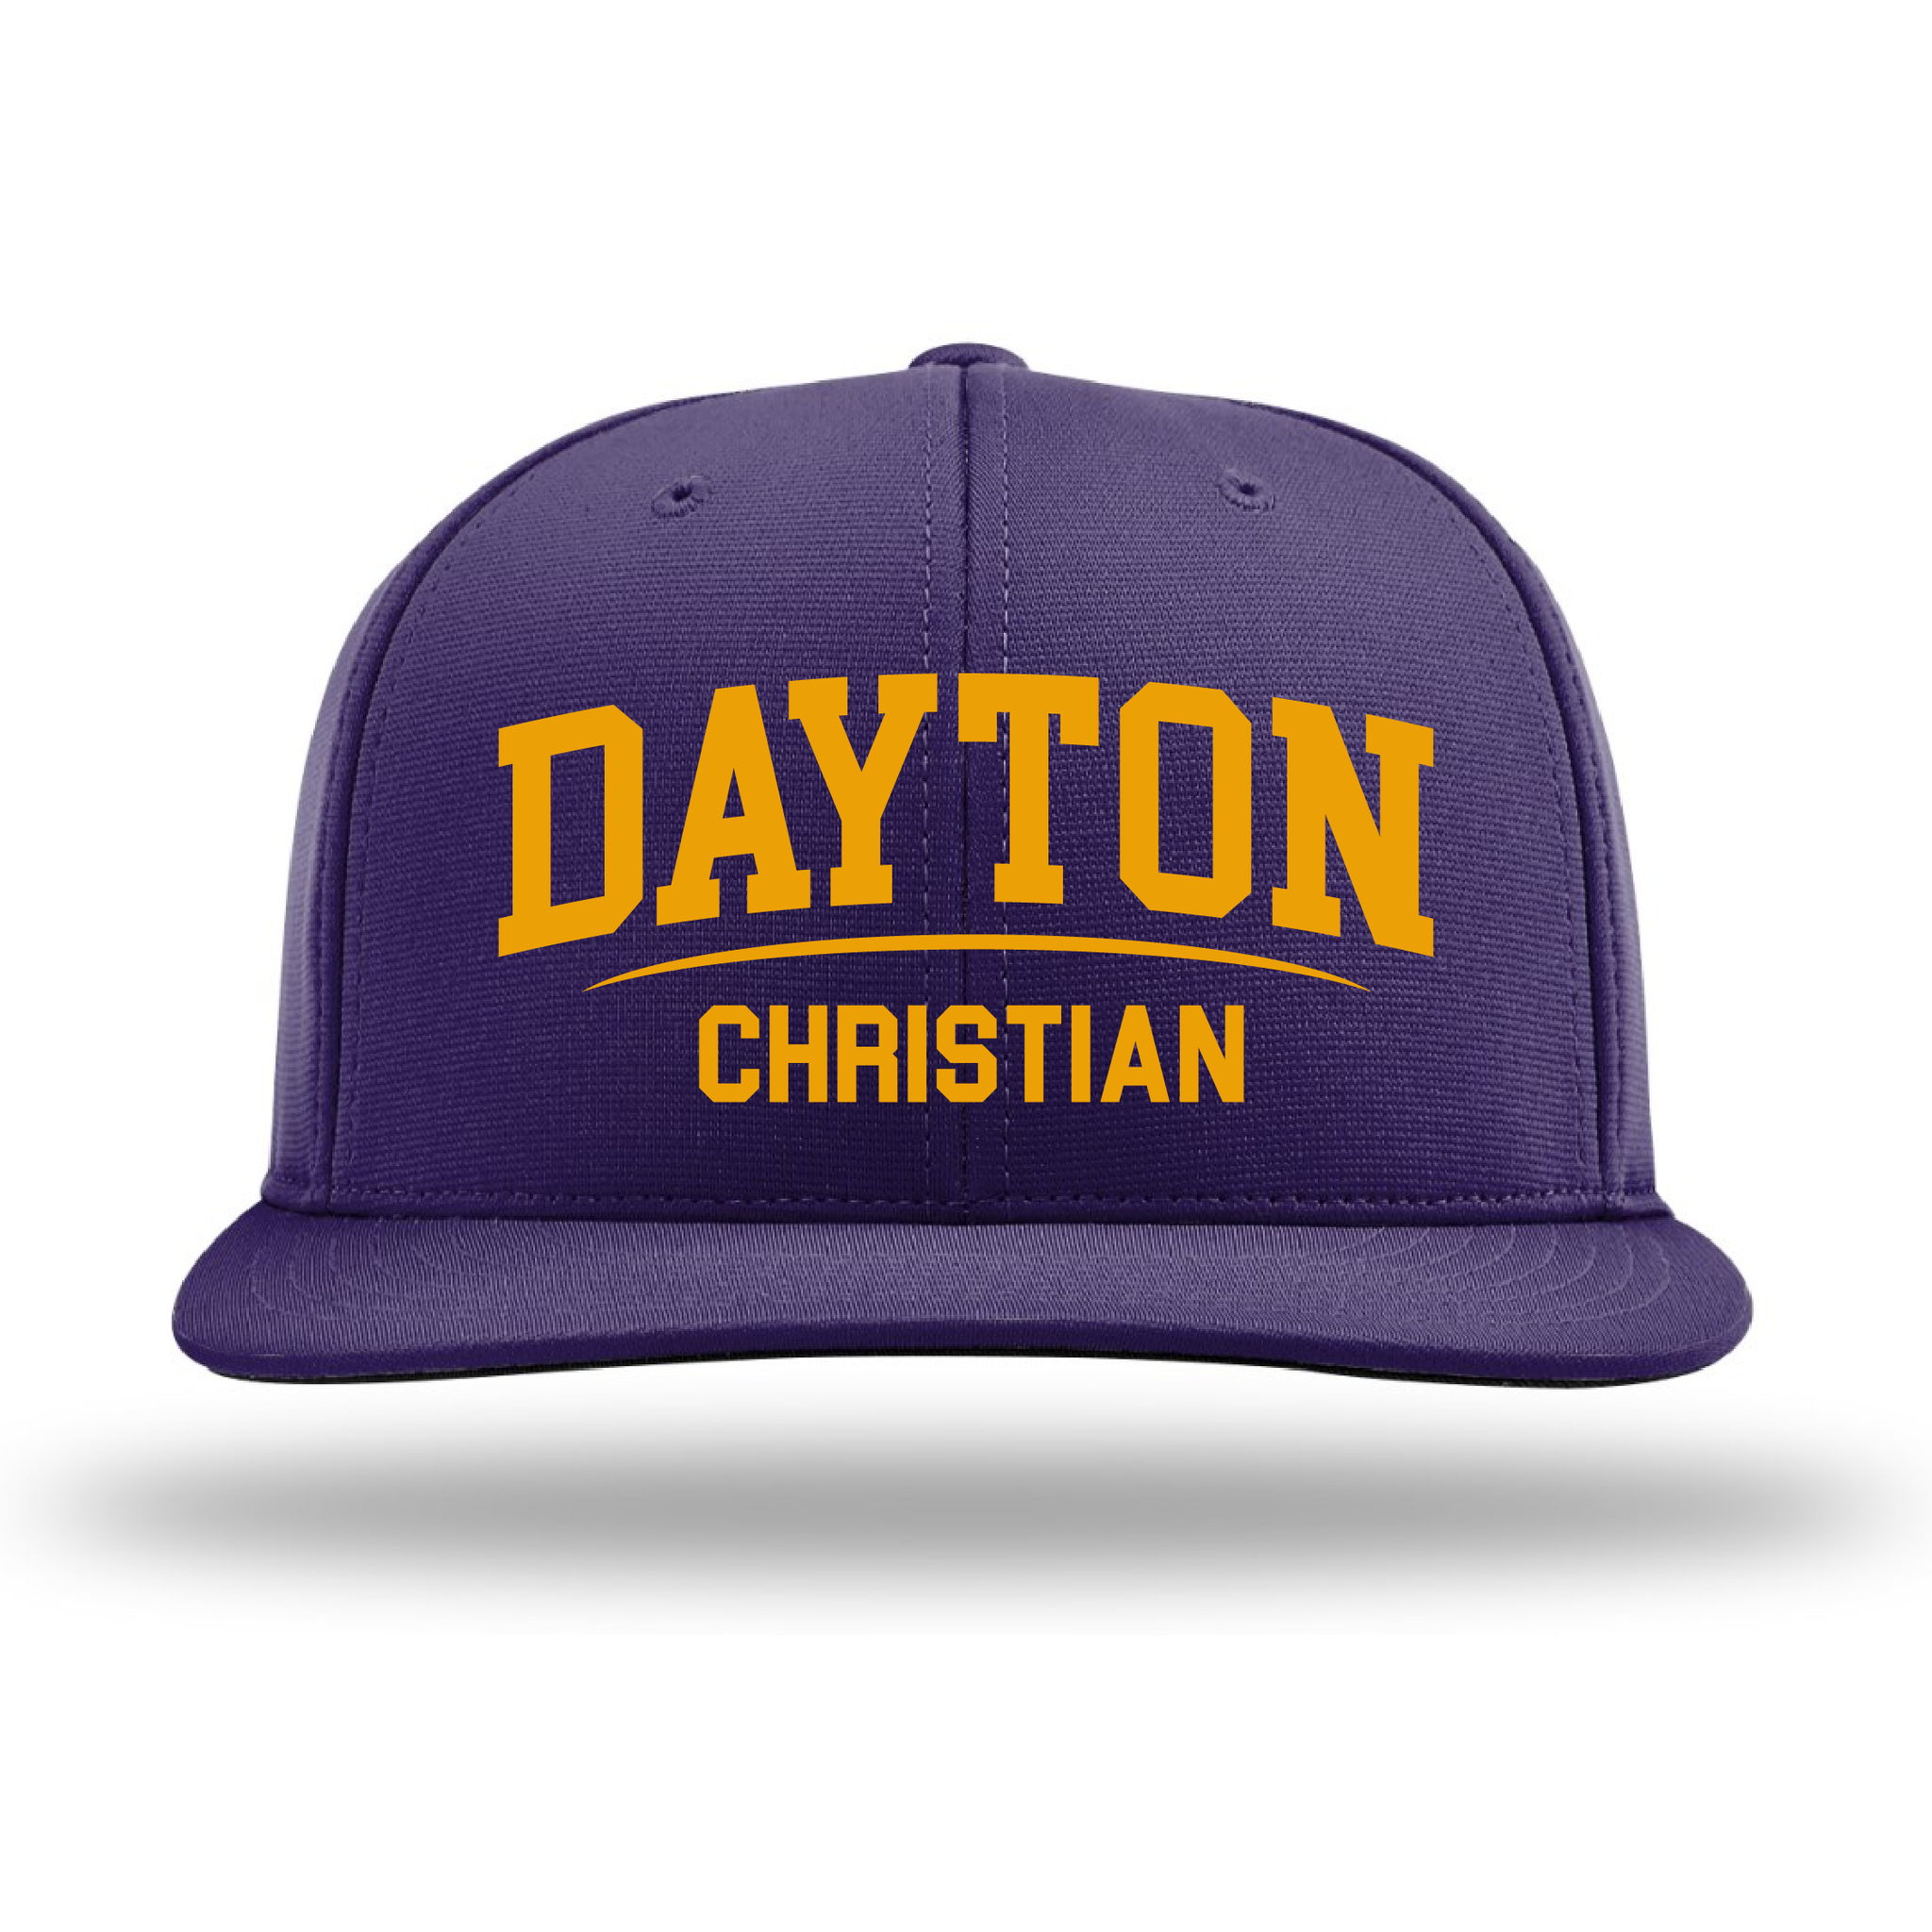 Dayton Christian Flex-Fit Hat